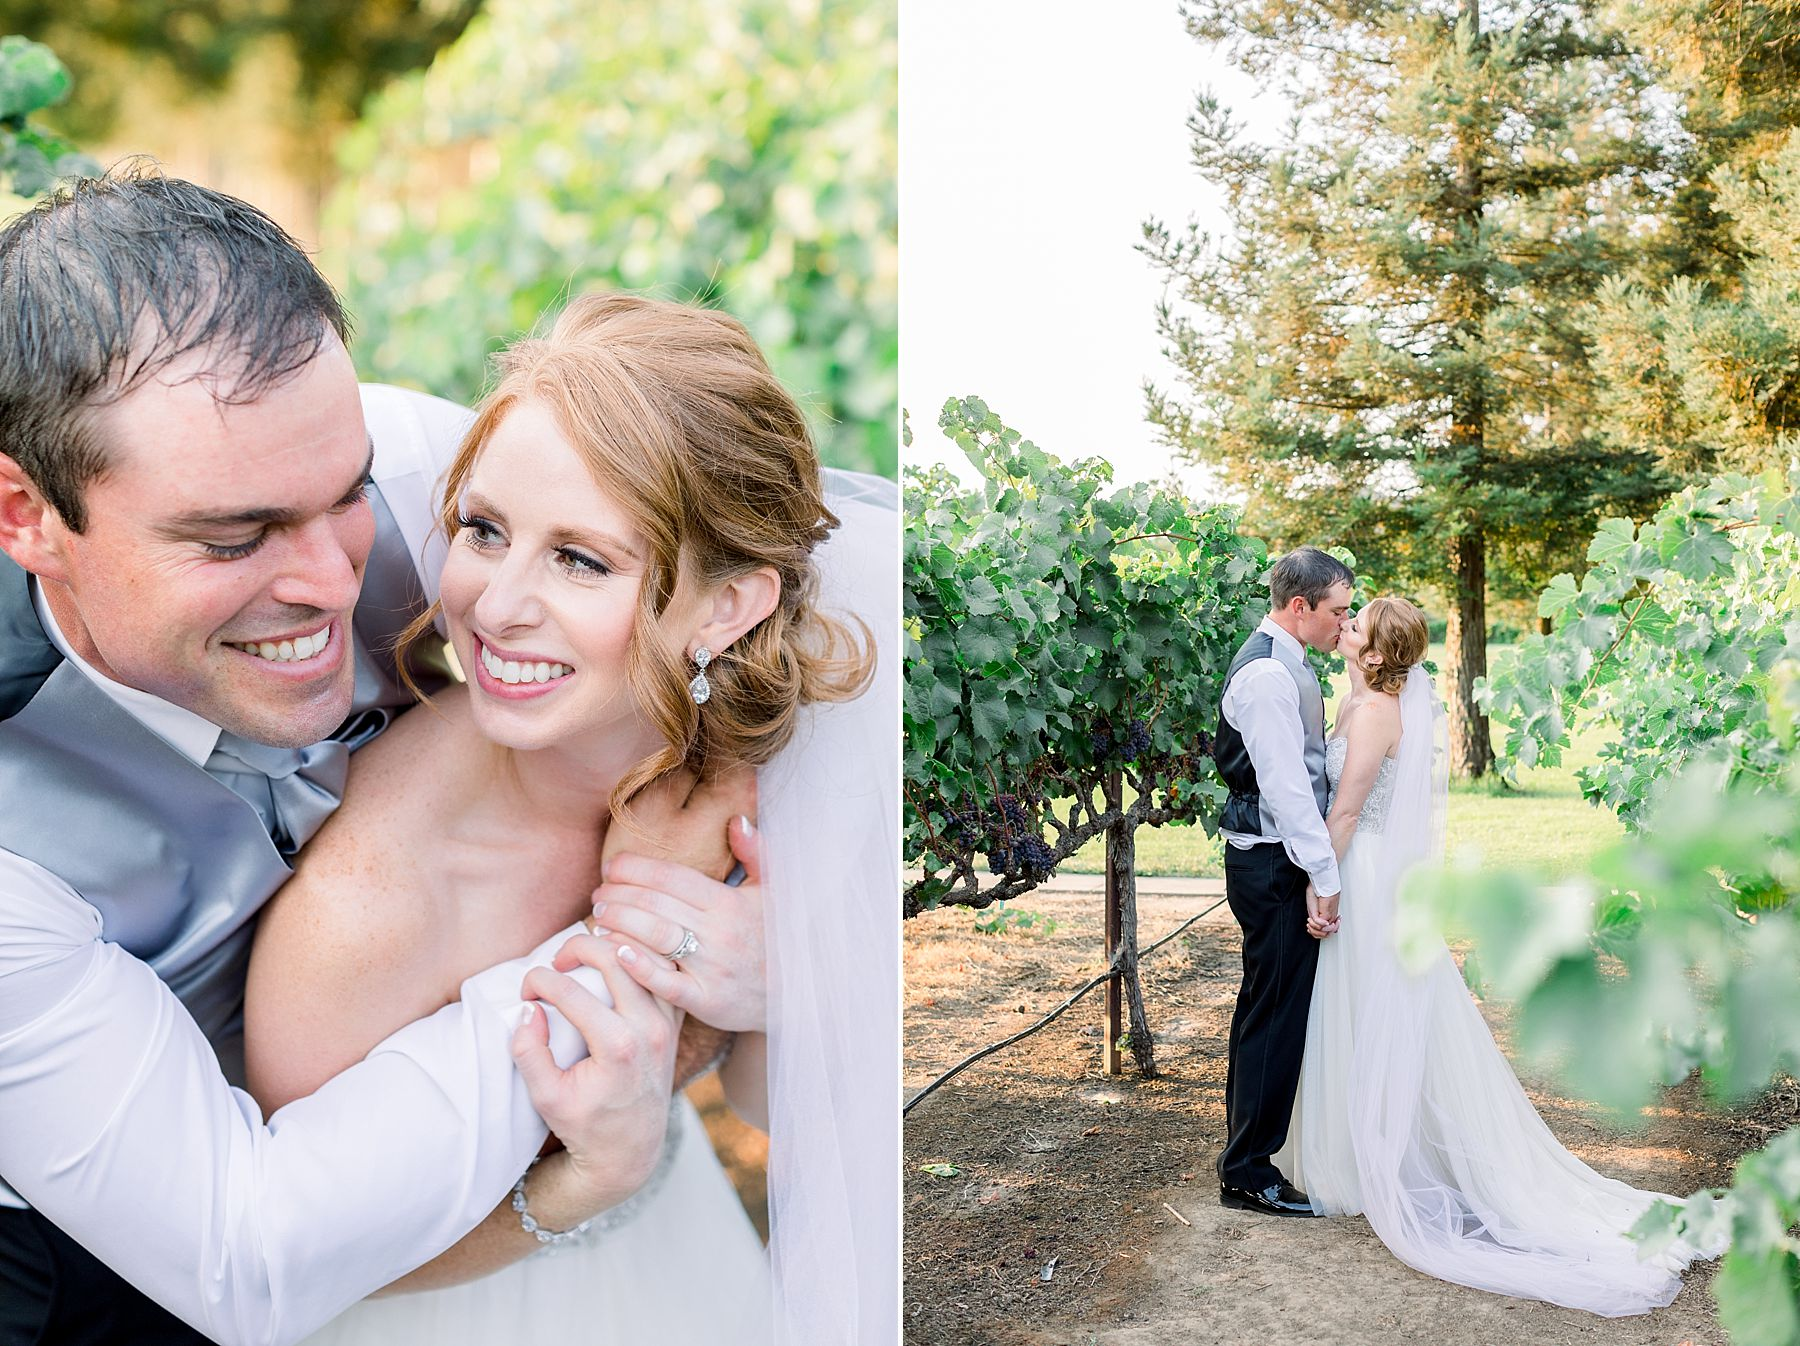 Wine and Roses Wedding - Wine and Roses Lodi Wedding Photographer - Sacramento Film Wedding Photographer - Ashley Baumgartner - Sacramento Luxury Wedding Photographer_0050.jpg